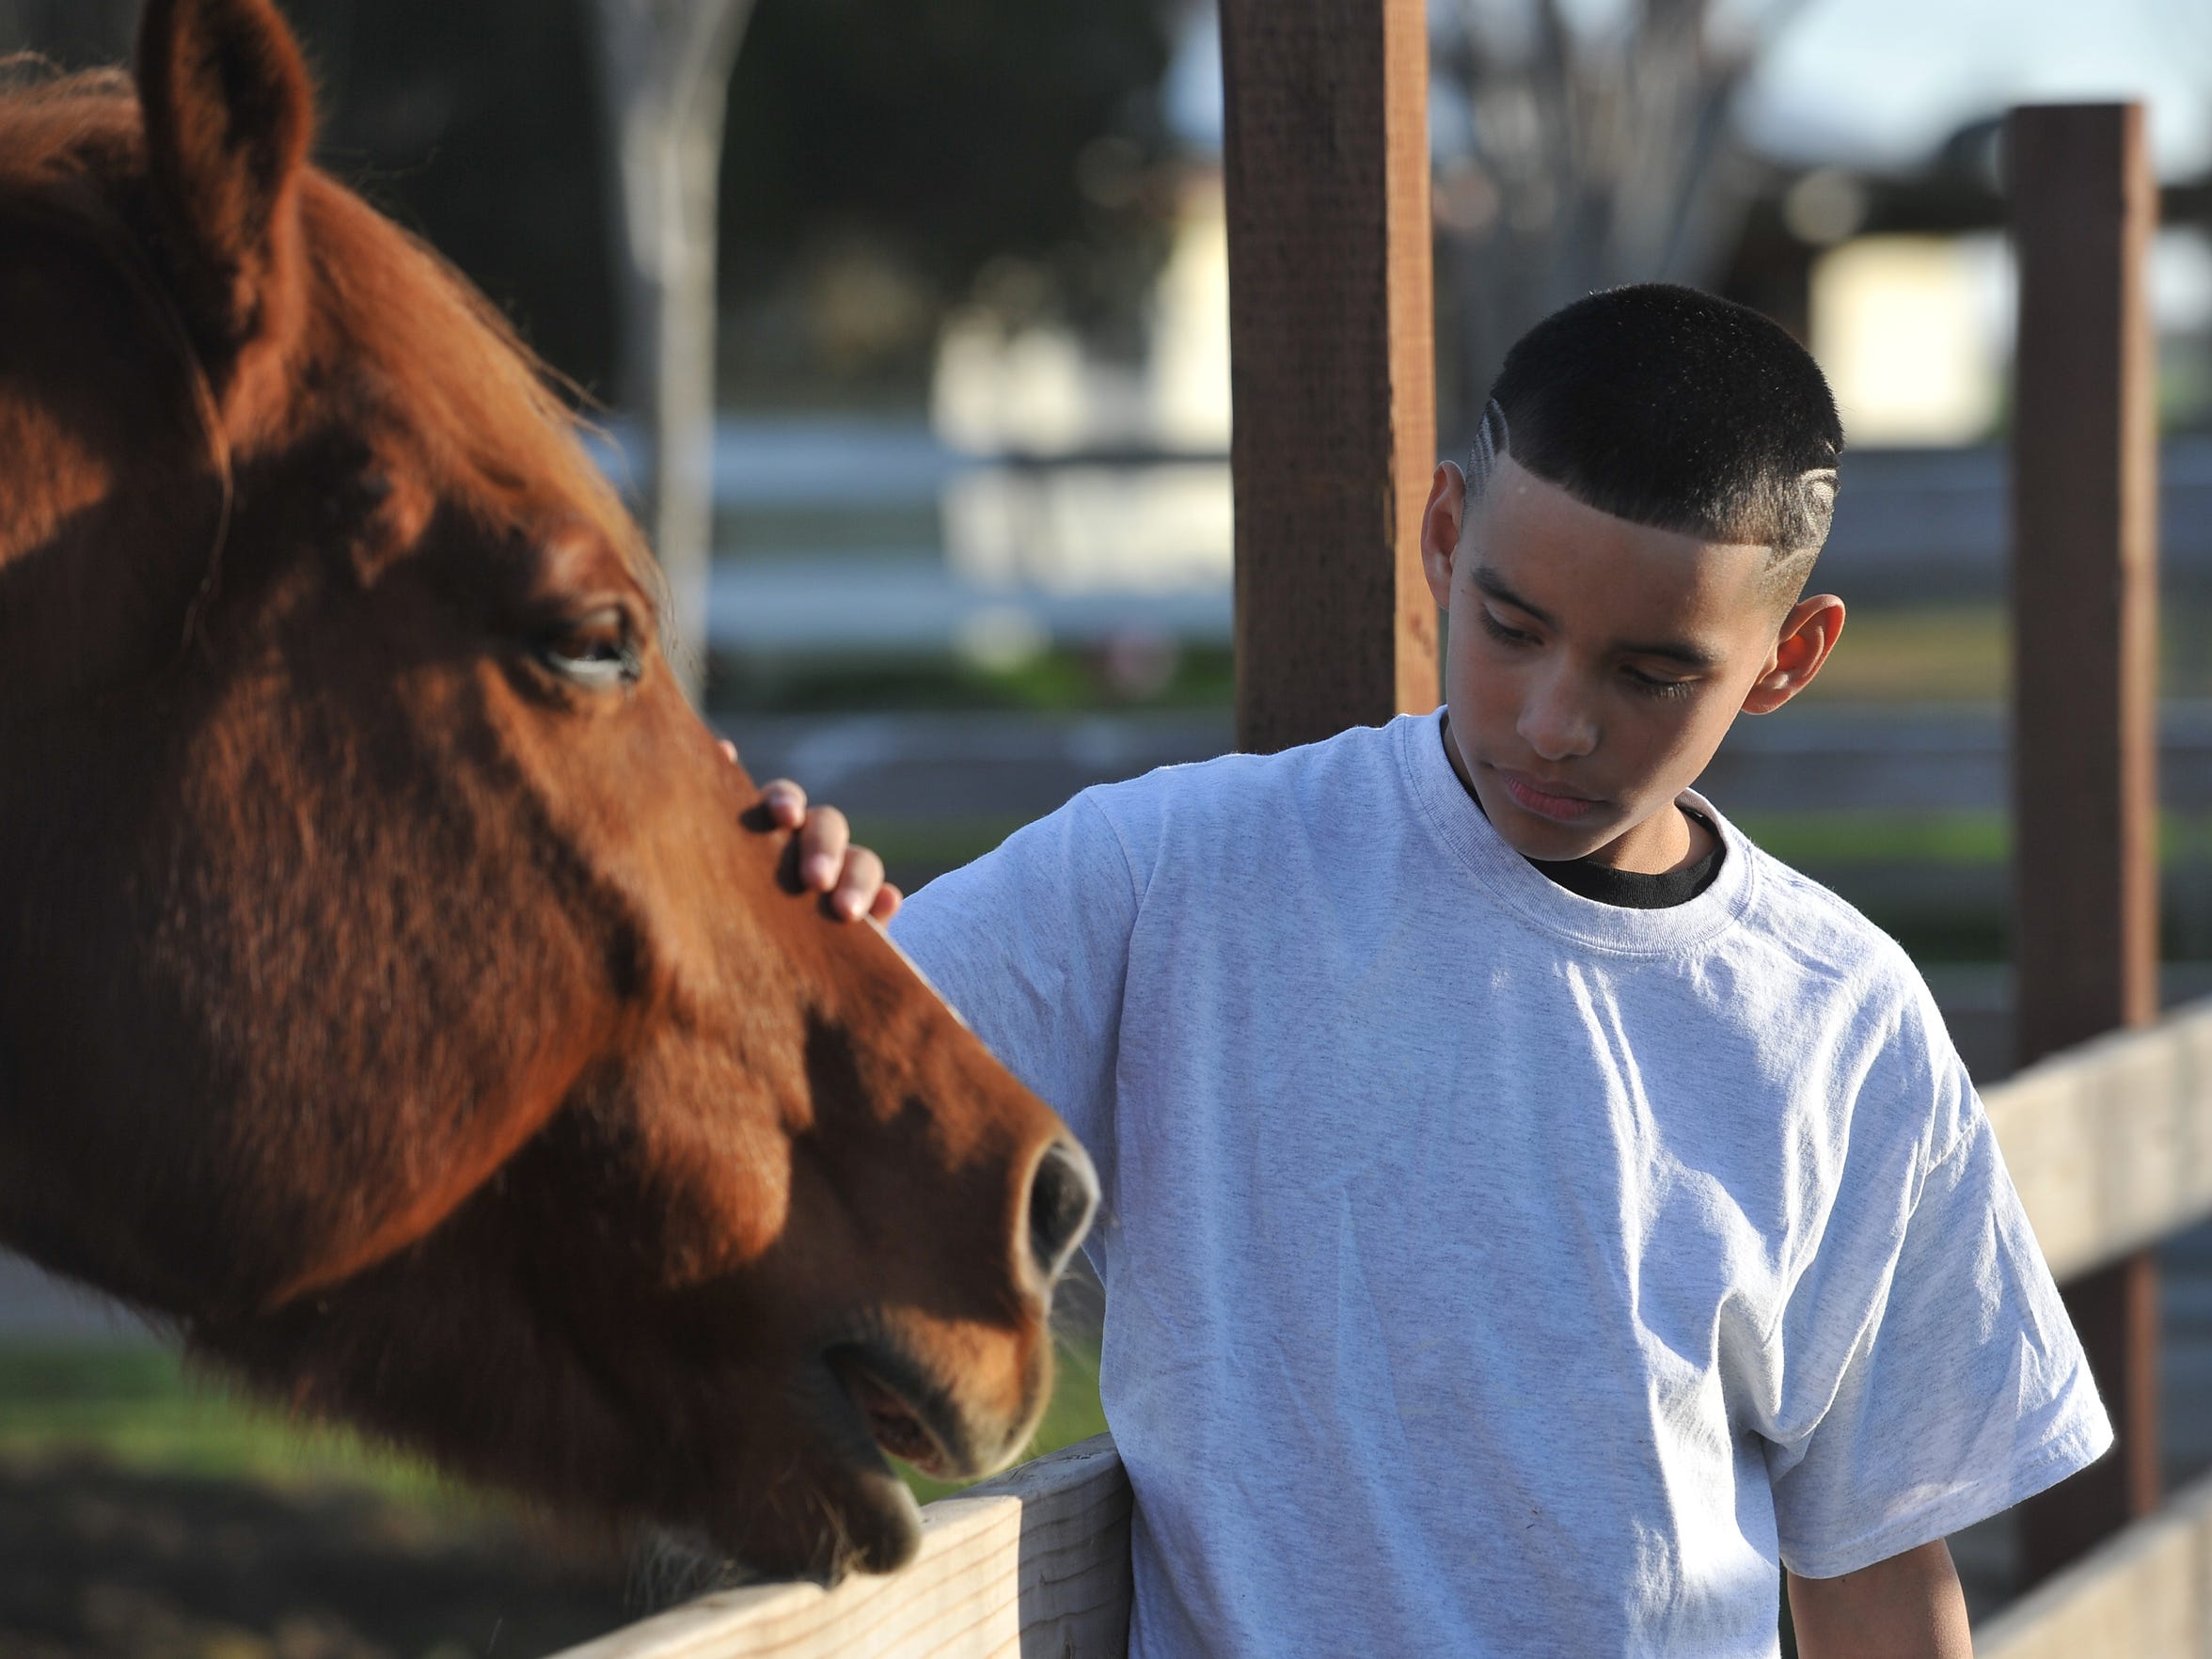 A.L.P.H.A. student Juan Cuevas of El Monte Middle School pats a horse at JM Ranch on Friday, January 15, 2016.